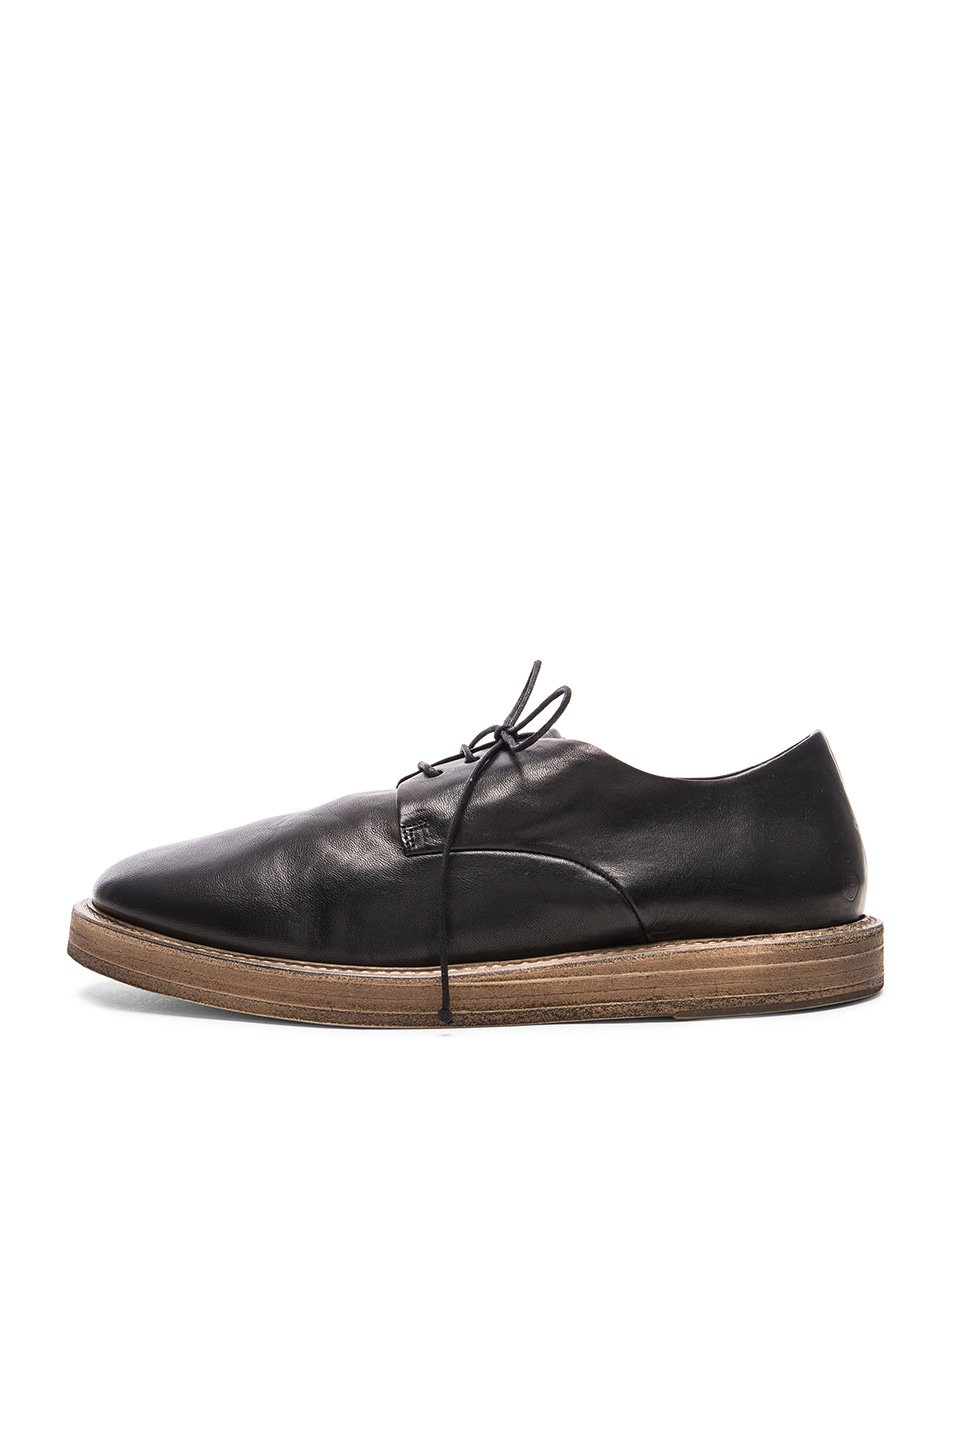 marsell wooden sole dress shoes in black fwrd